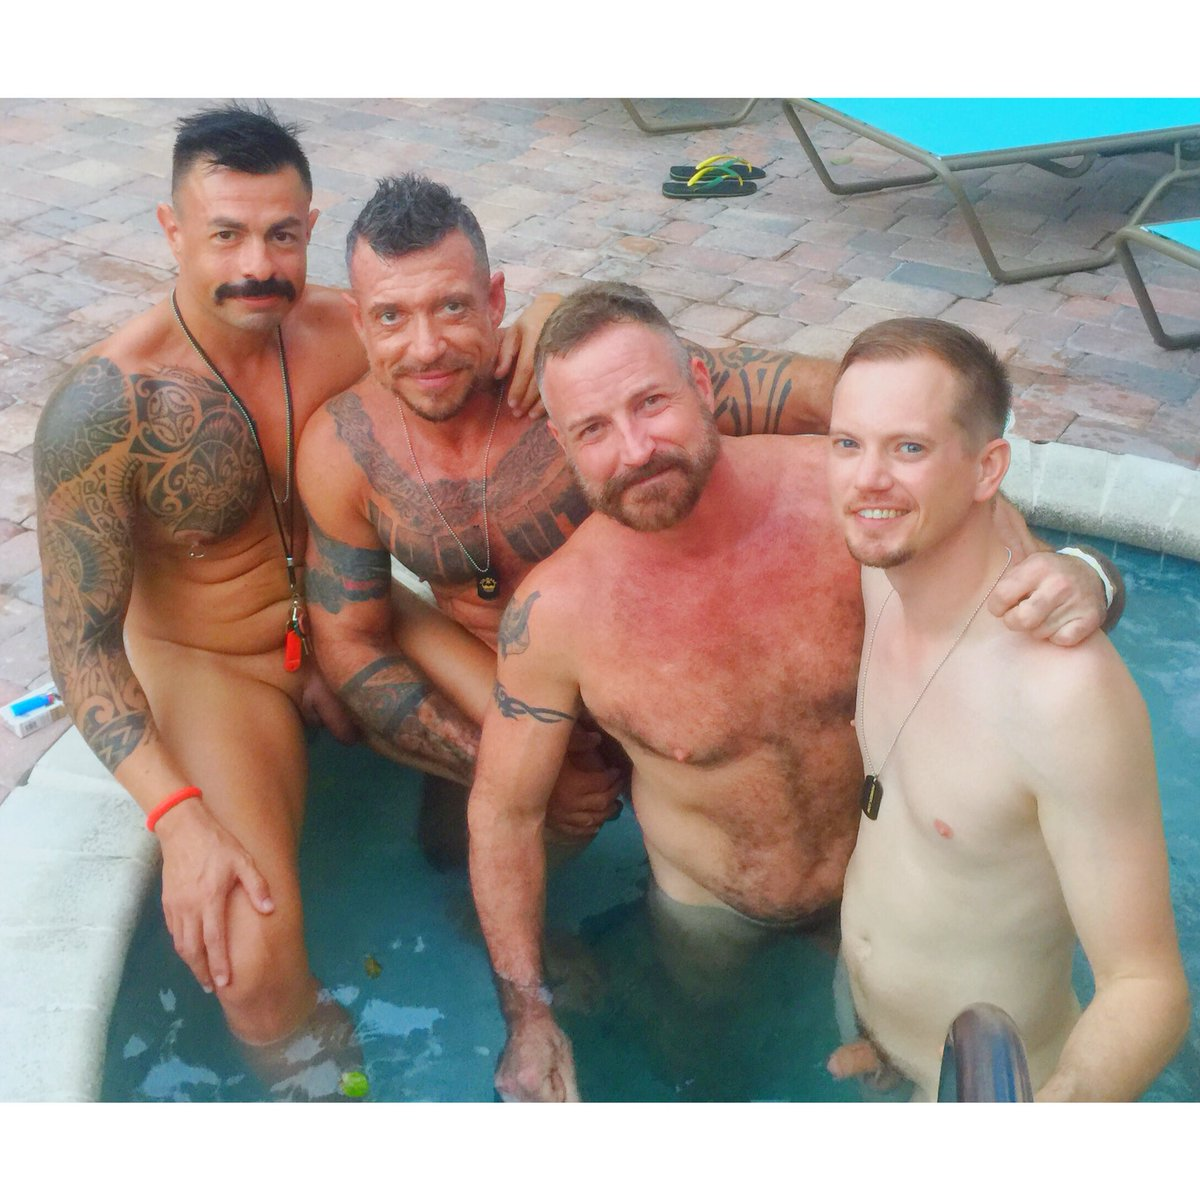 Gay Pool Party Pornos